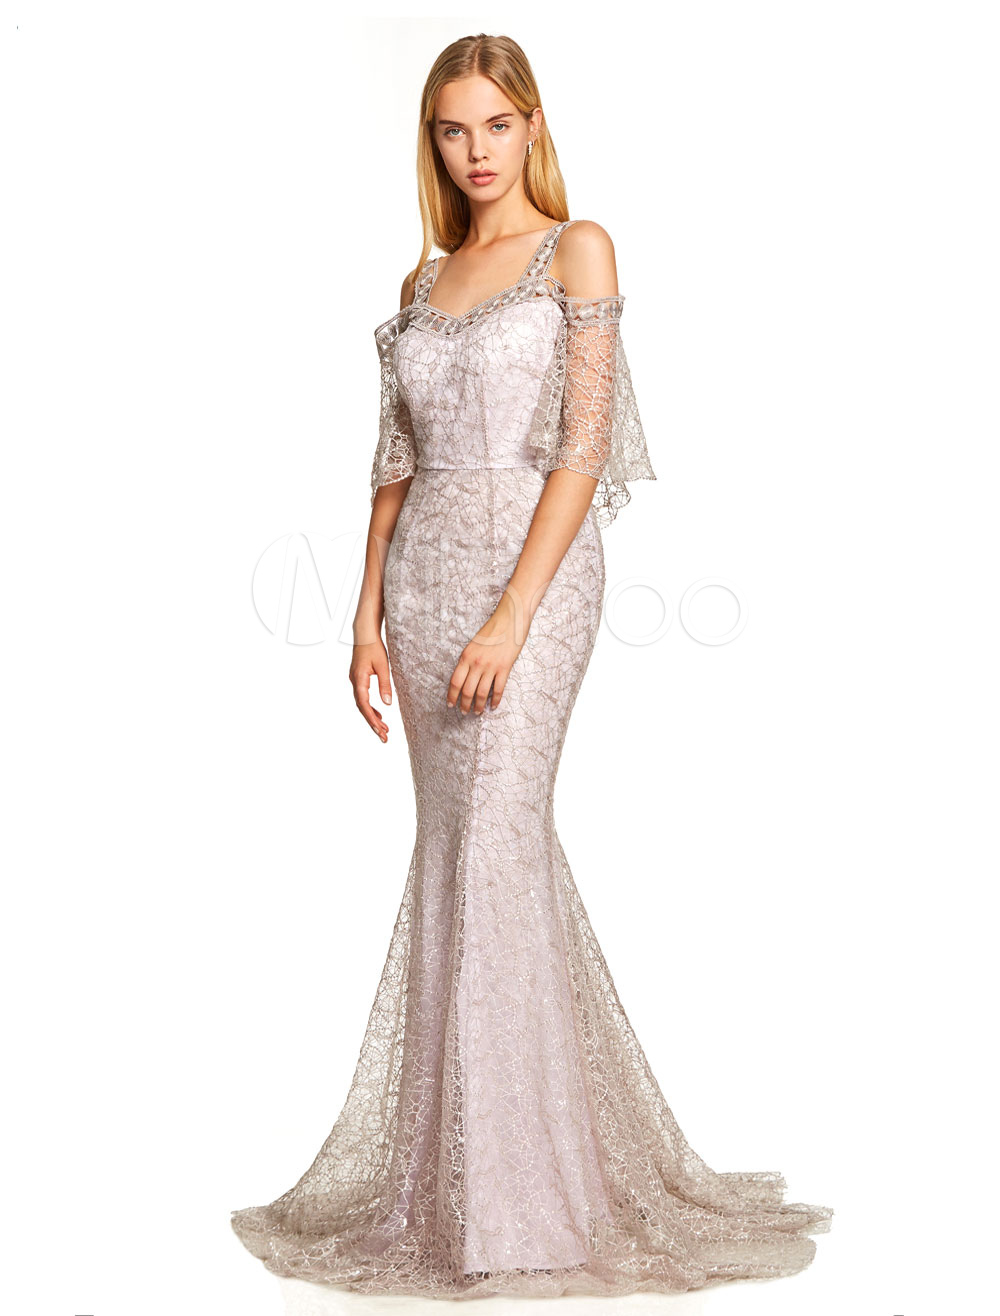 Mermaid Prom Dresses Lace Cold Shoulder Evening Dress Half Sleeve Formal Gowns With Train